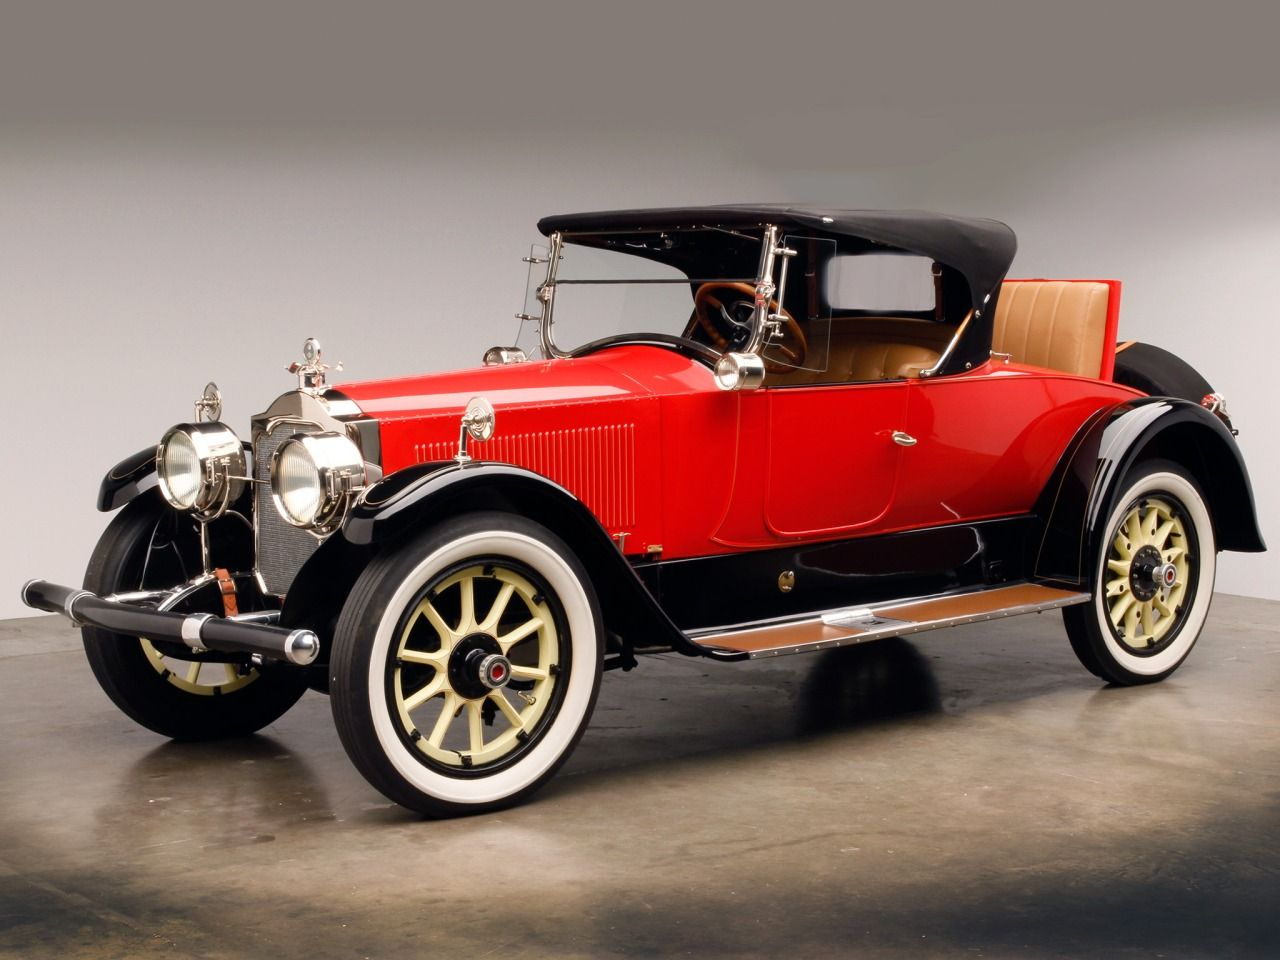 1920 Packard Twin Six Runabout | Packard 1899-1962 | Pinterest ...